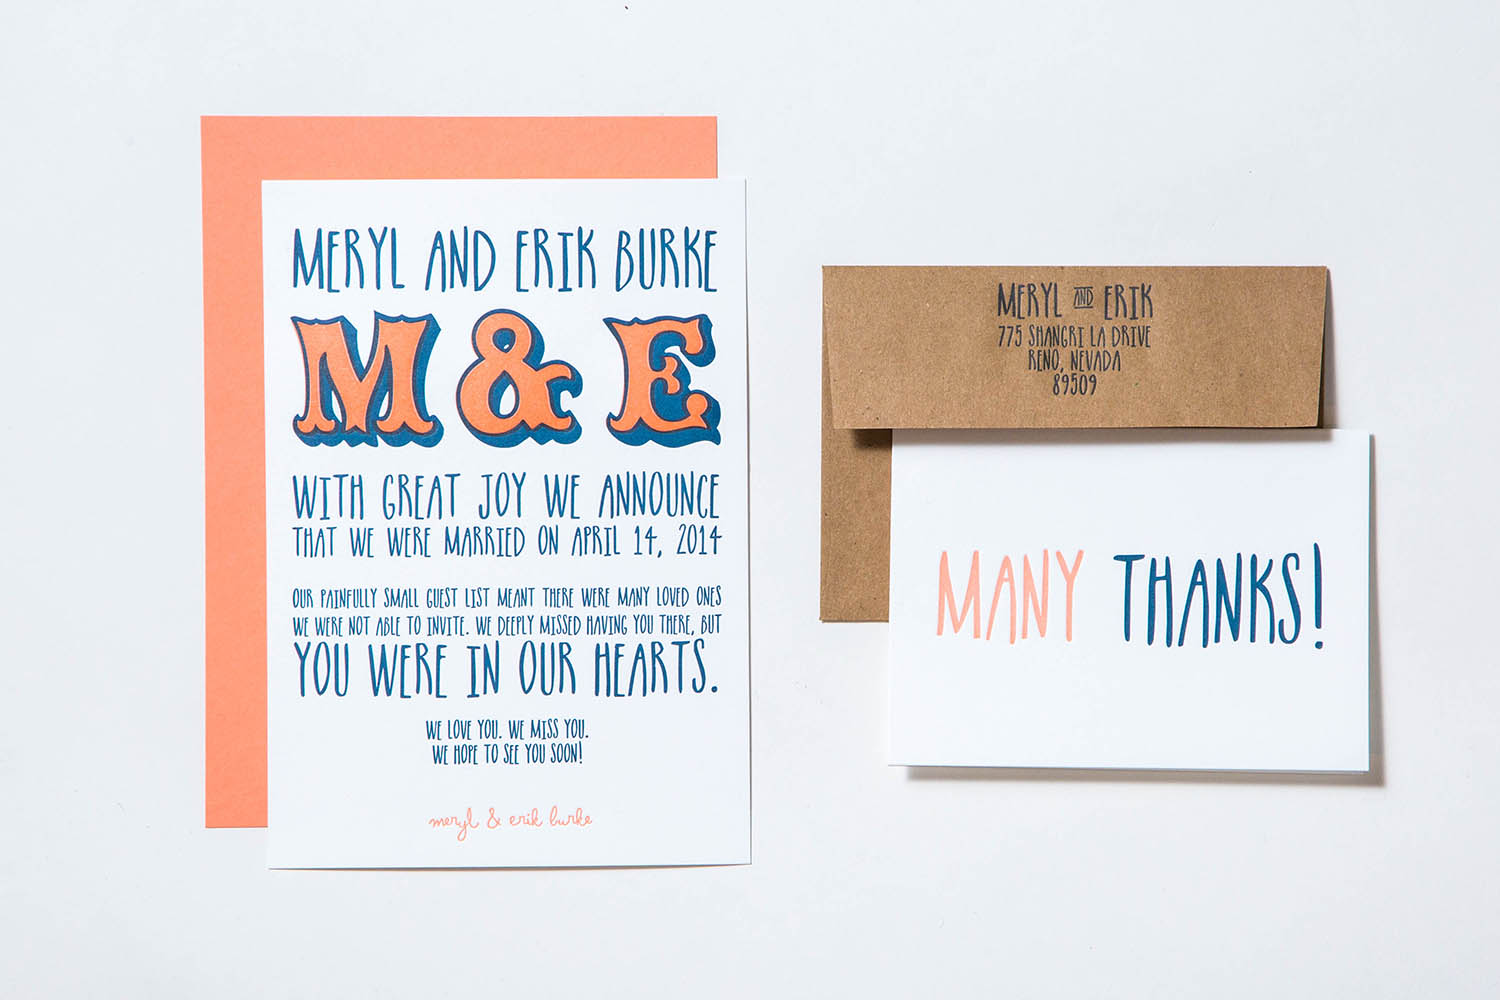 Letterpress wedding announcement and thank you card